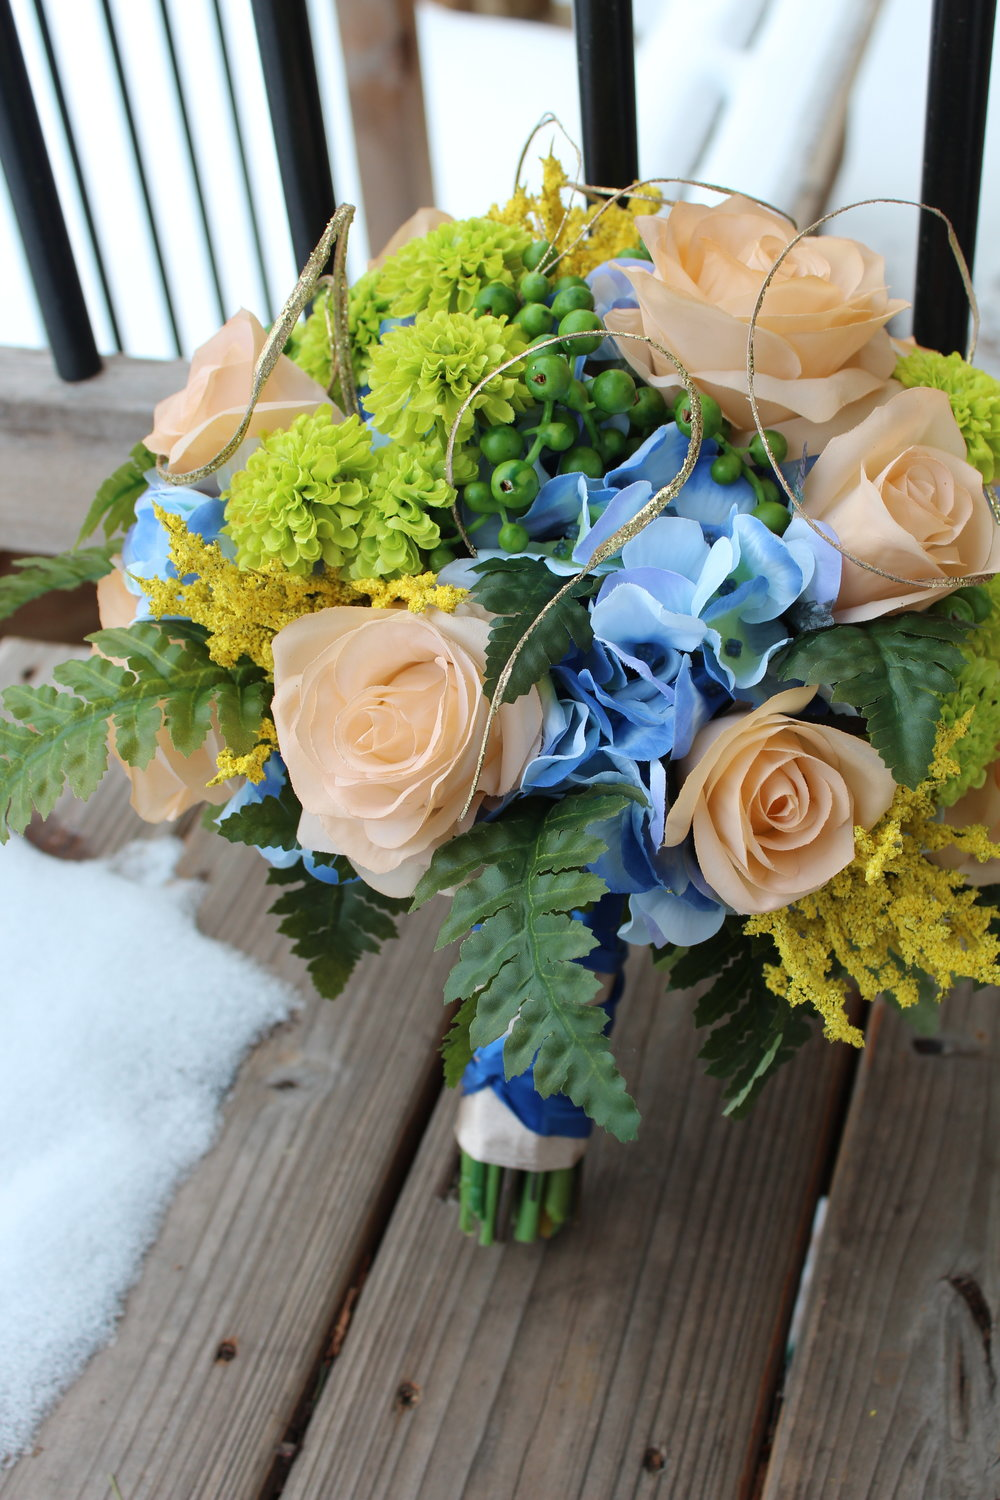 silk-wedding-bouquet-recreating.jpg